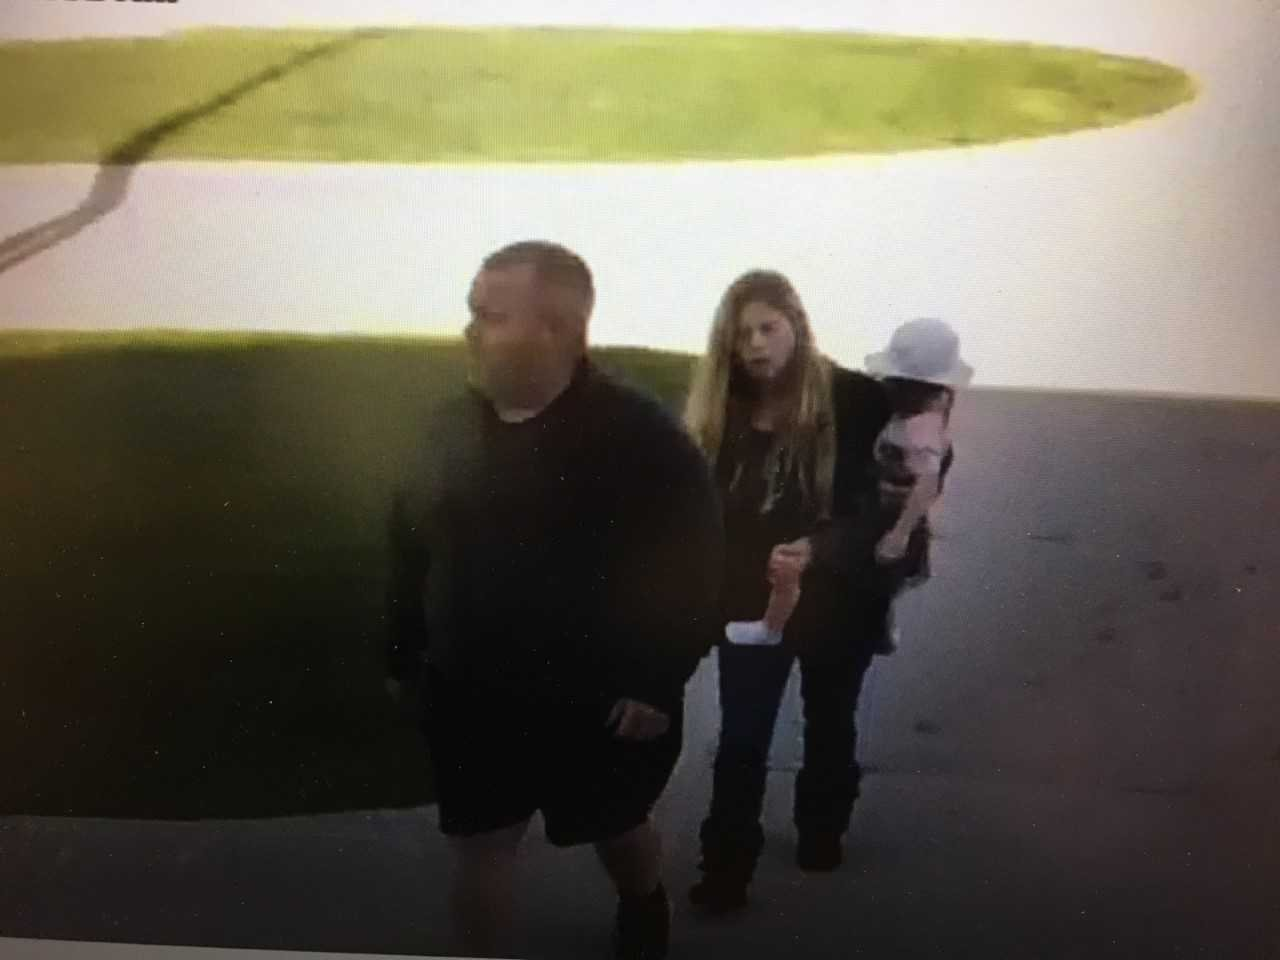 Surveillance video from Iowa